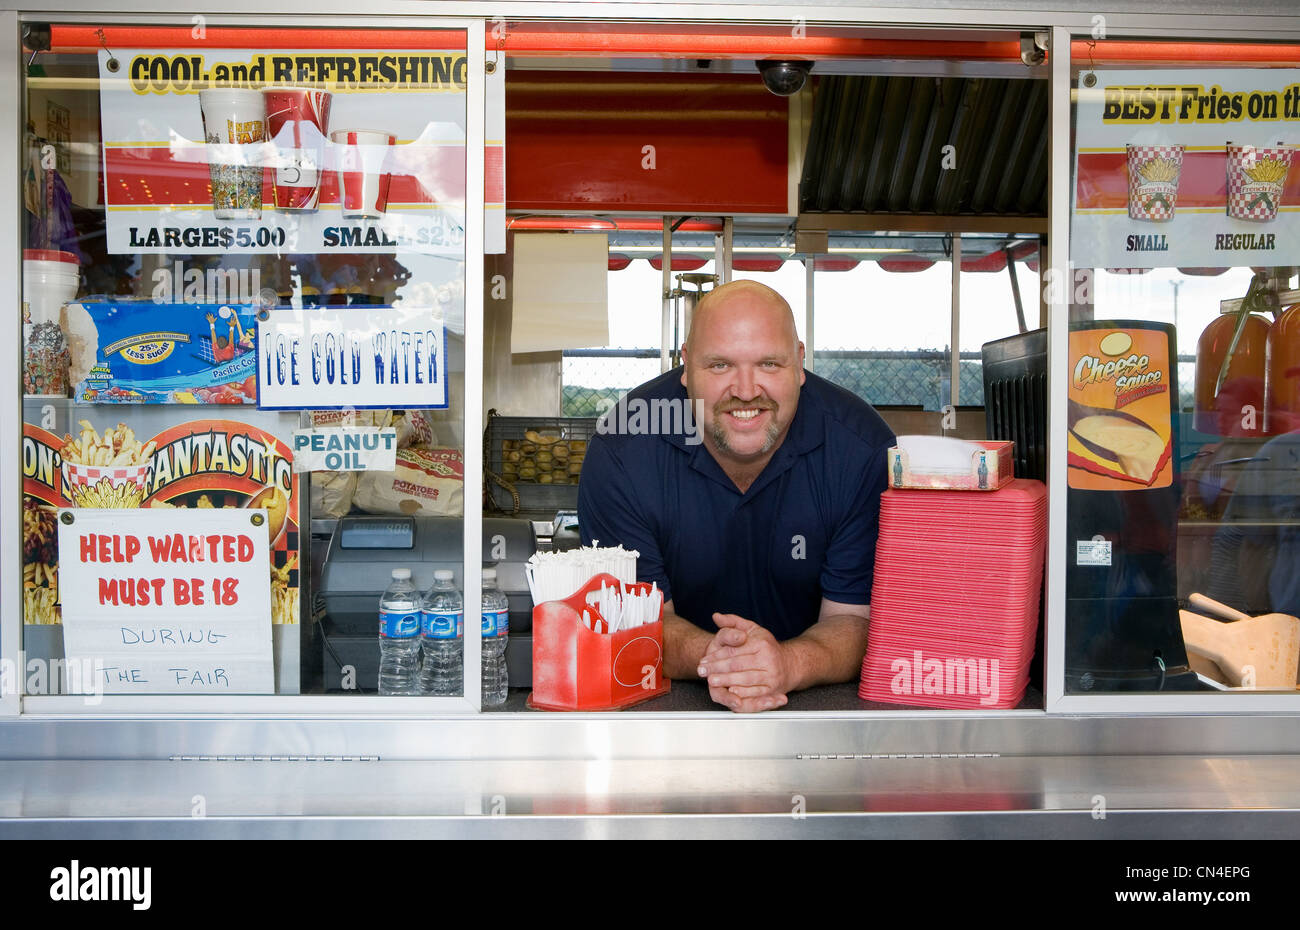 Owner of food stall at county fayre, smiling Stock Photo